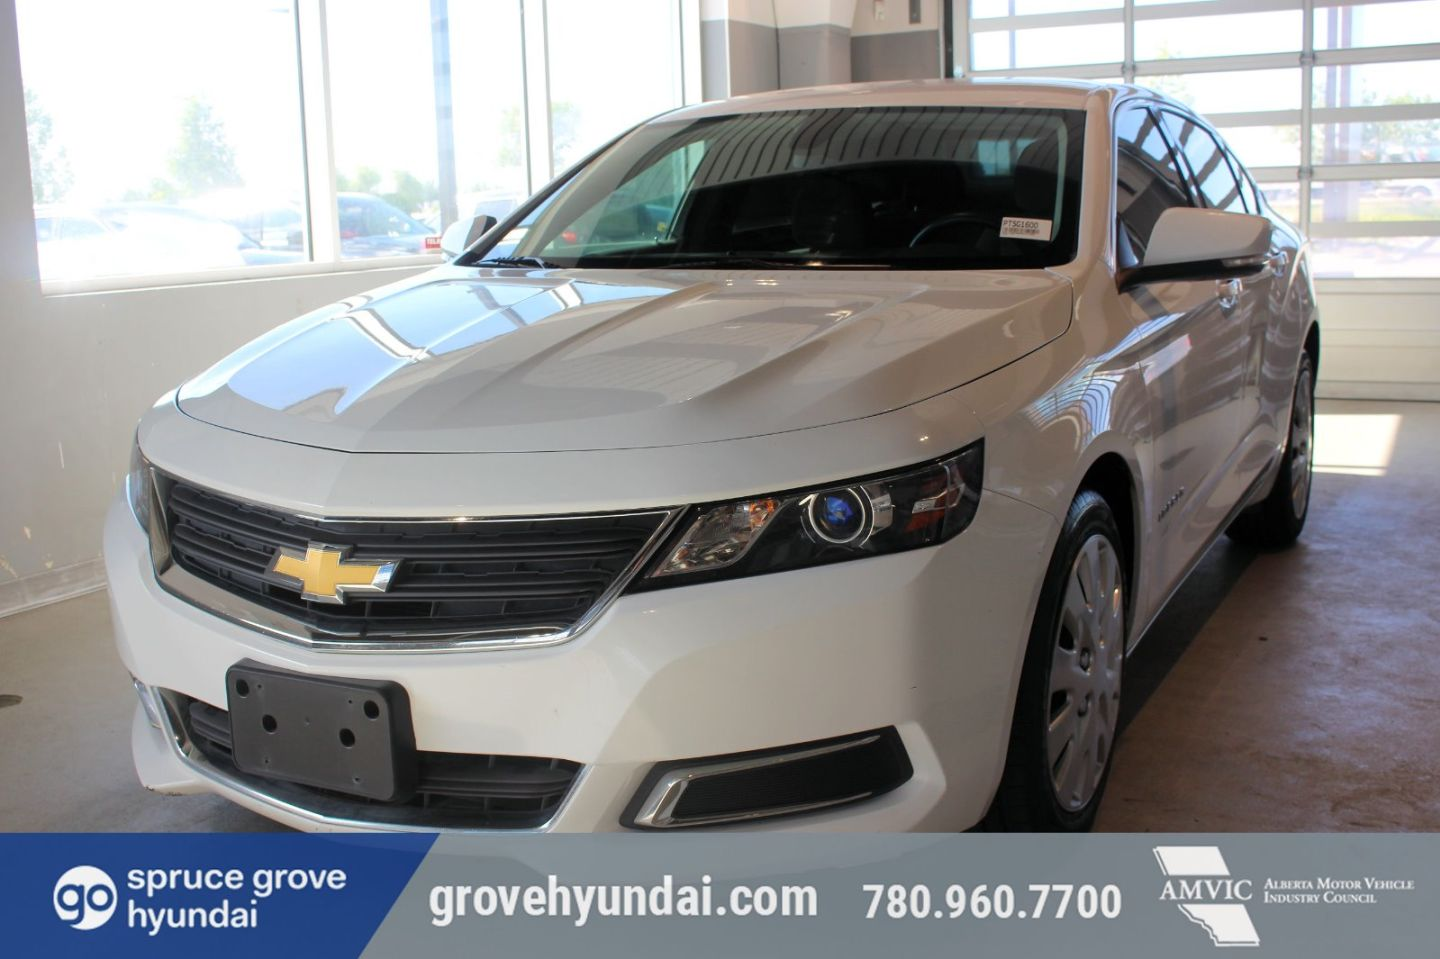 2016 Chevrolet Impala  for sale in Spruce Grove, Alberta